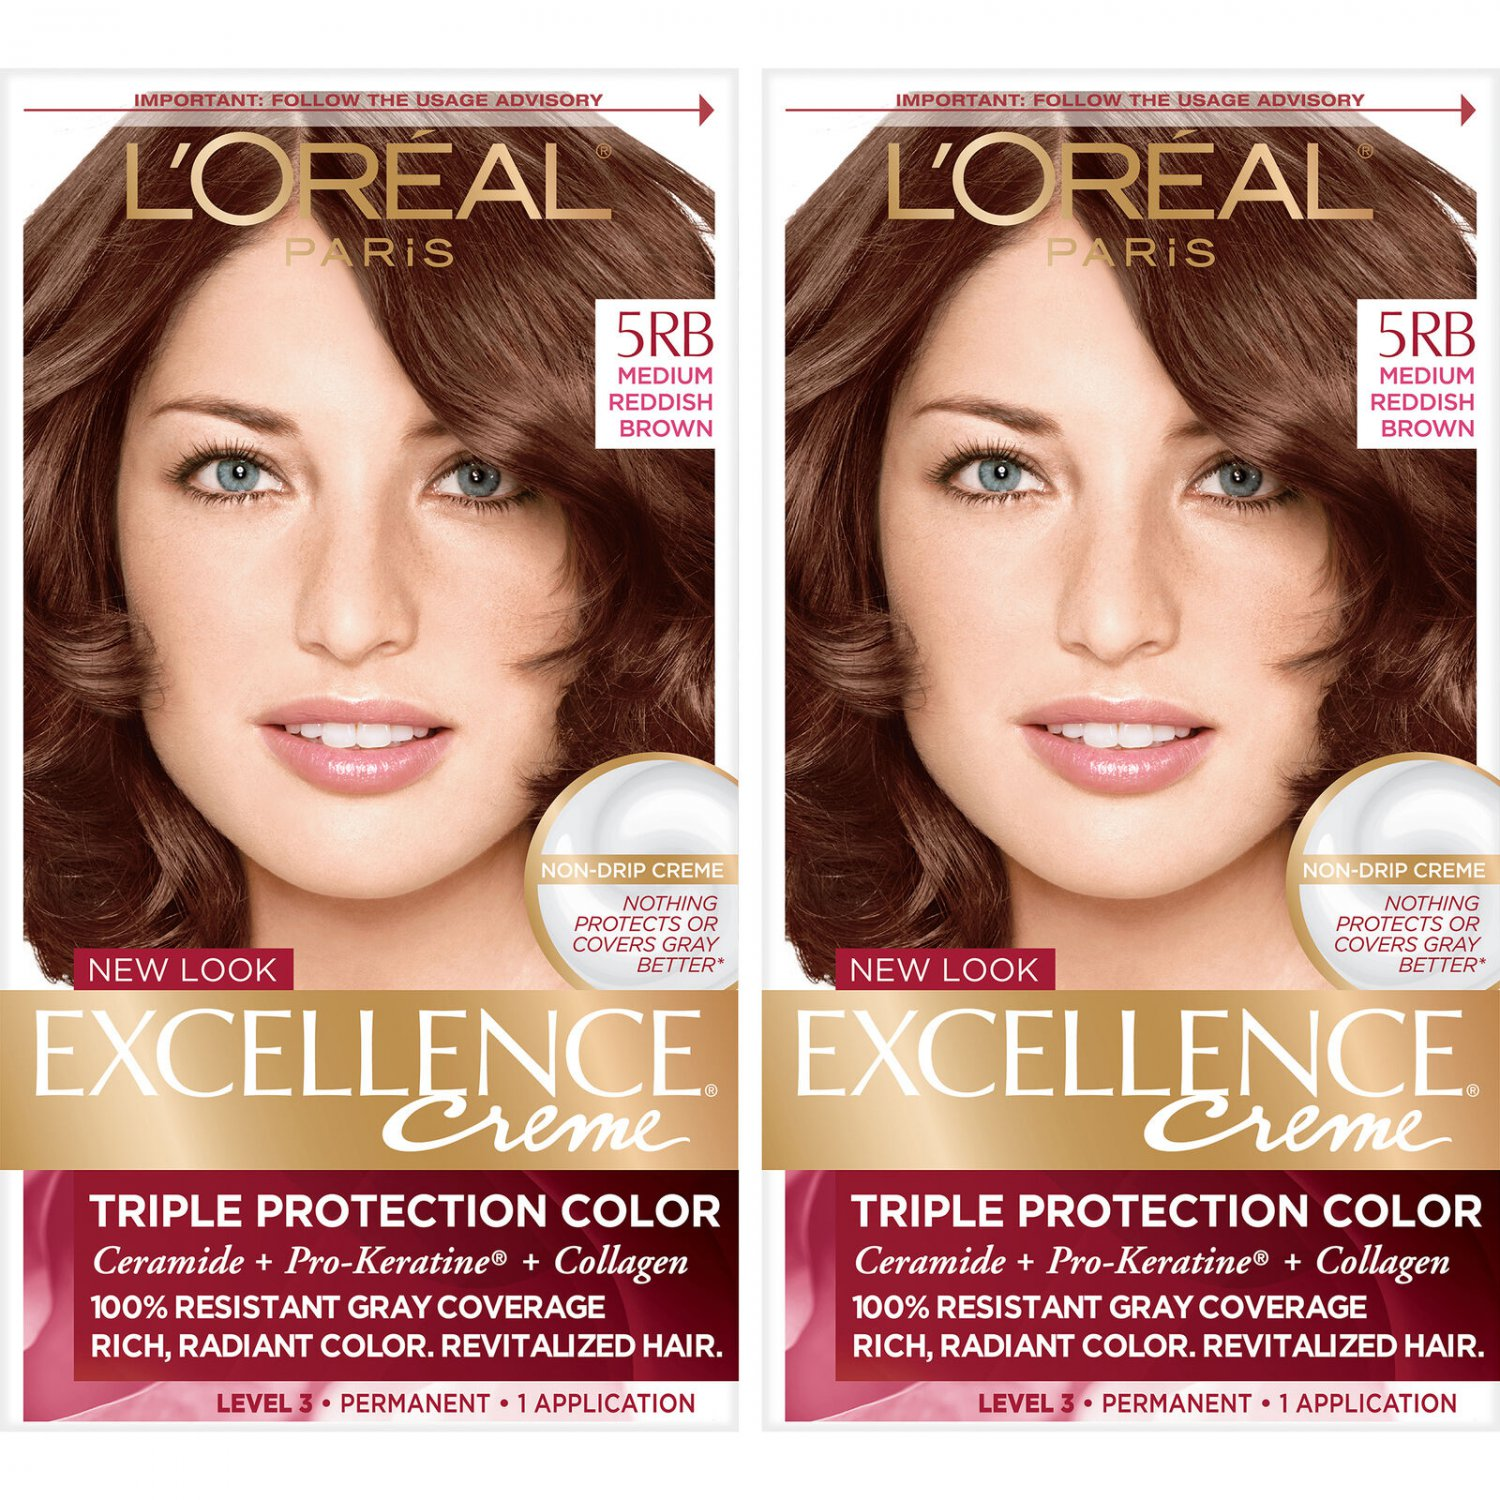 LOreal Paris Excellence Creme Permanent Hair Color 5RB Med Reddish Brown 2 Pack